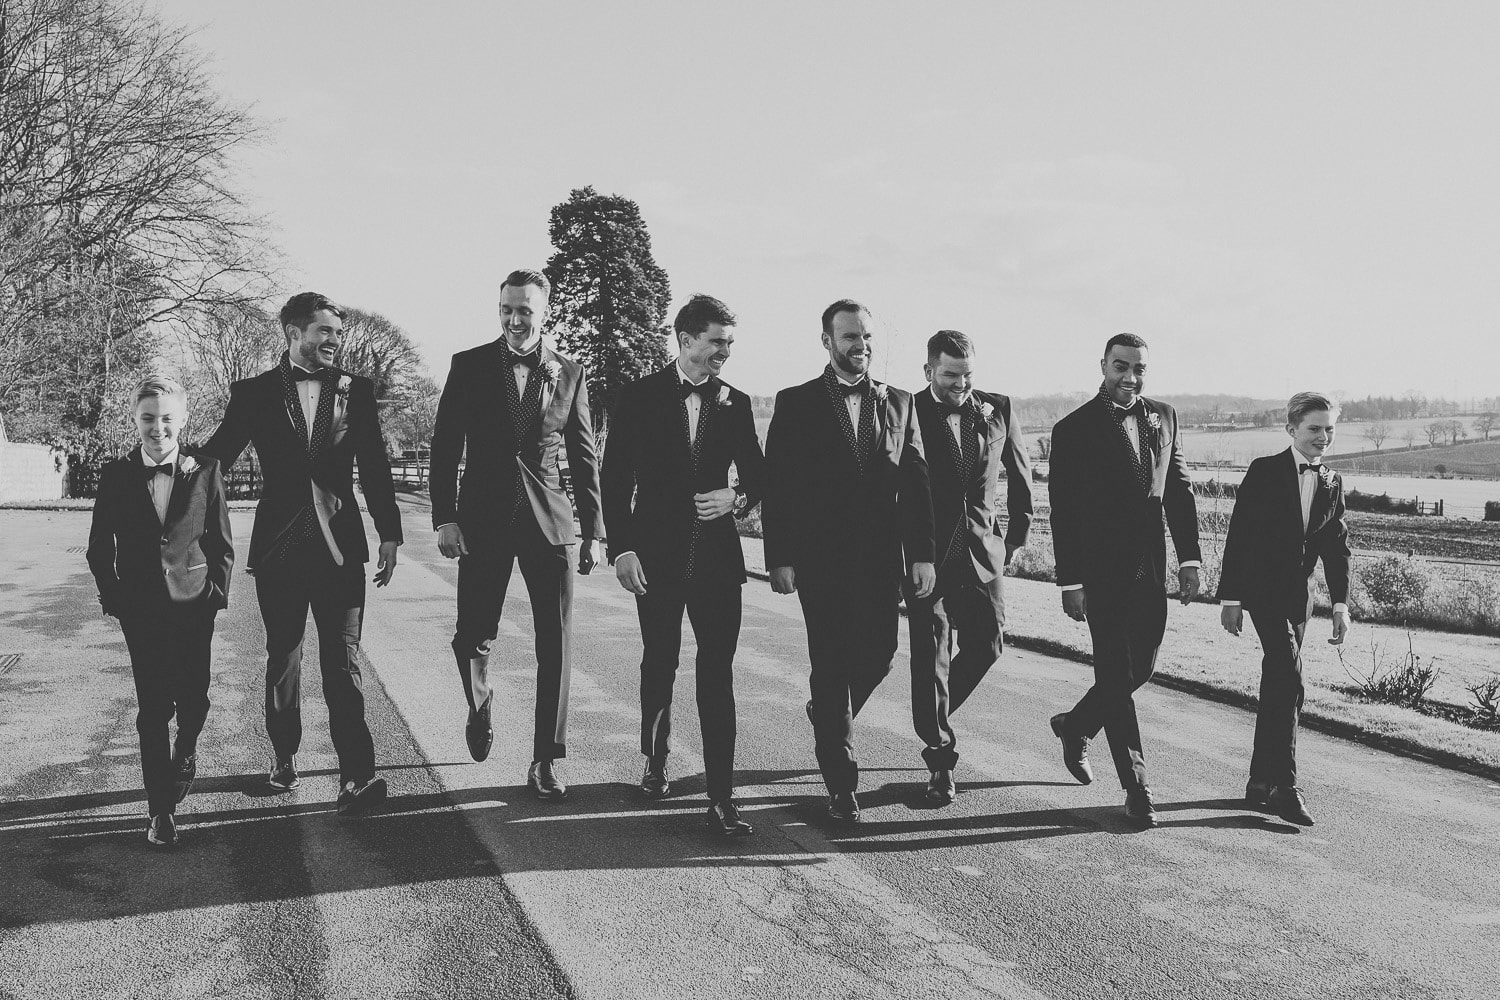 york-wedding-groomsmen-walking